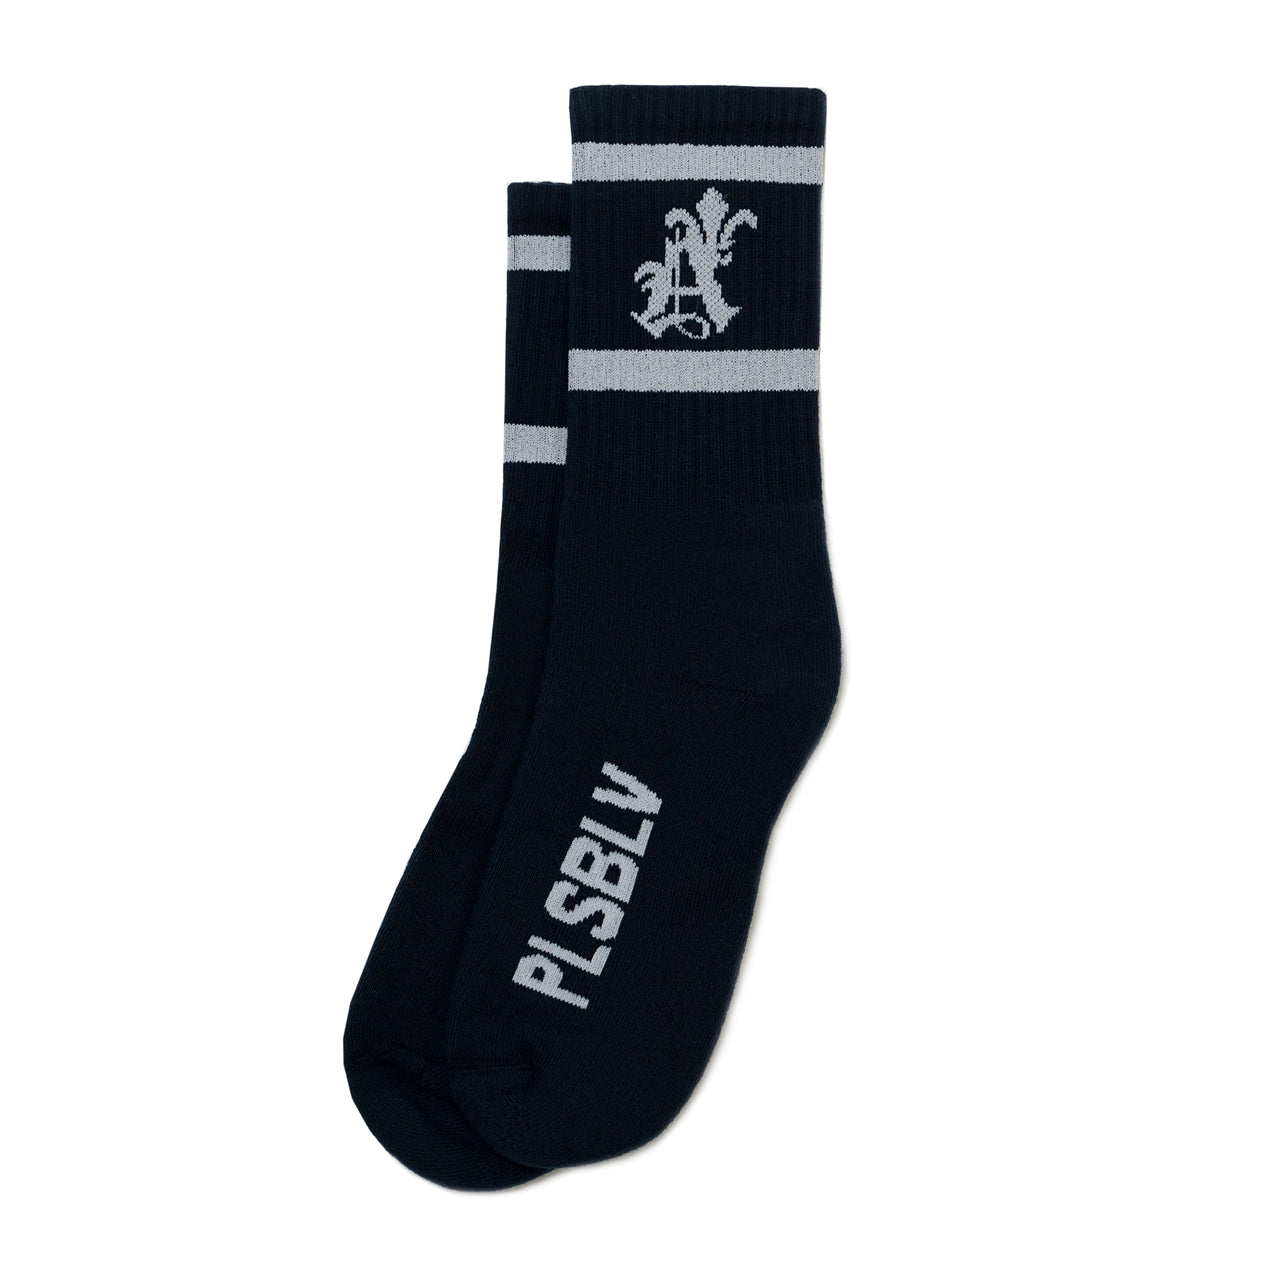 PREMIUM KNIT ATHLETIC SOCK SU20 MADE IN USA